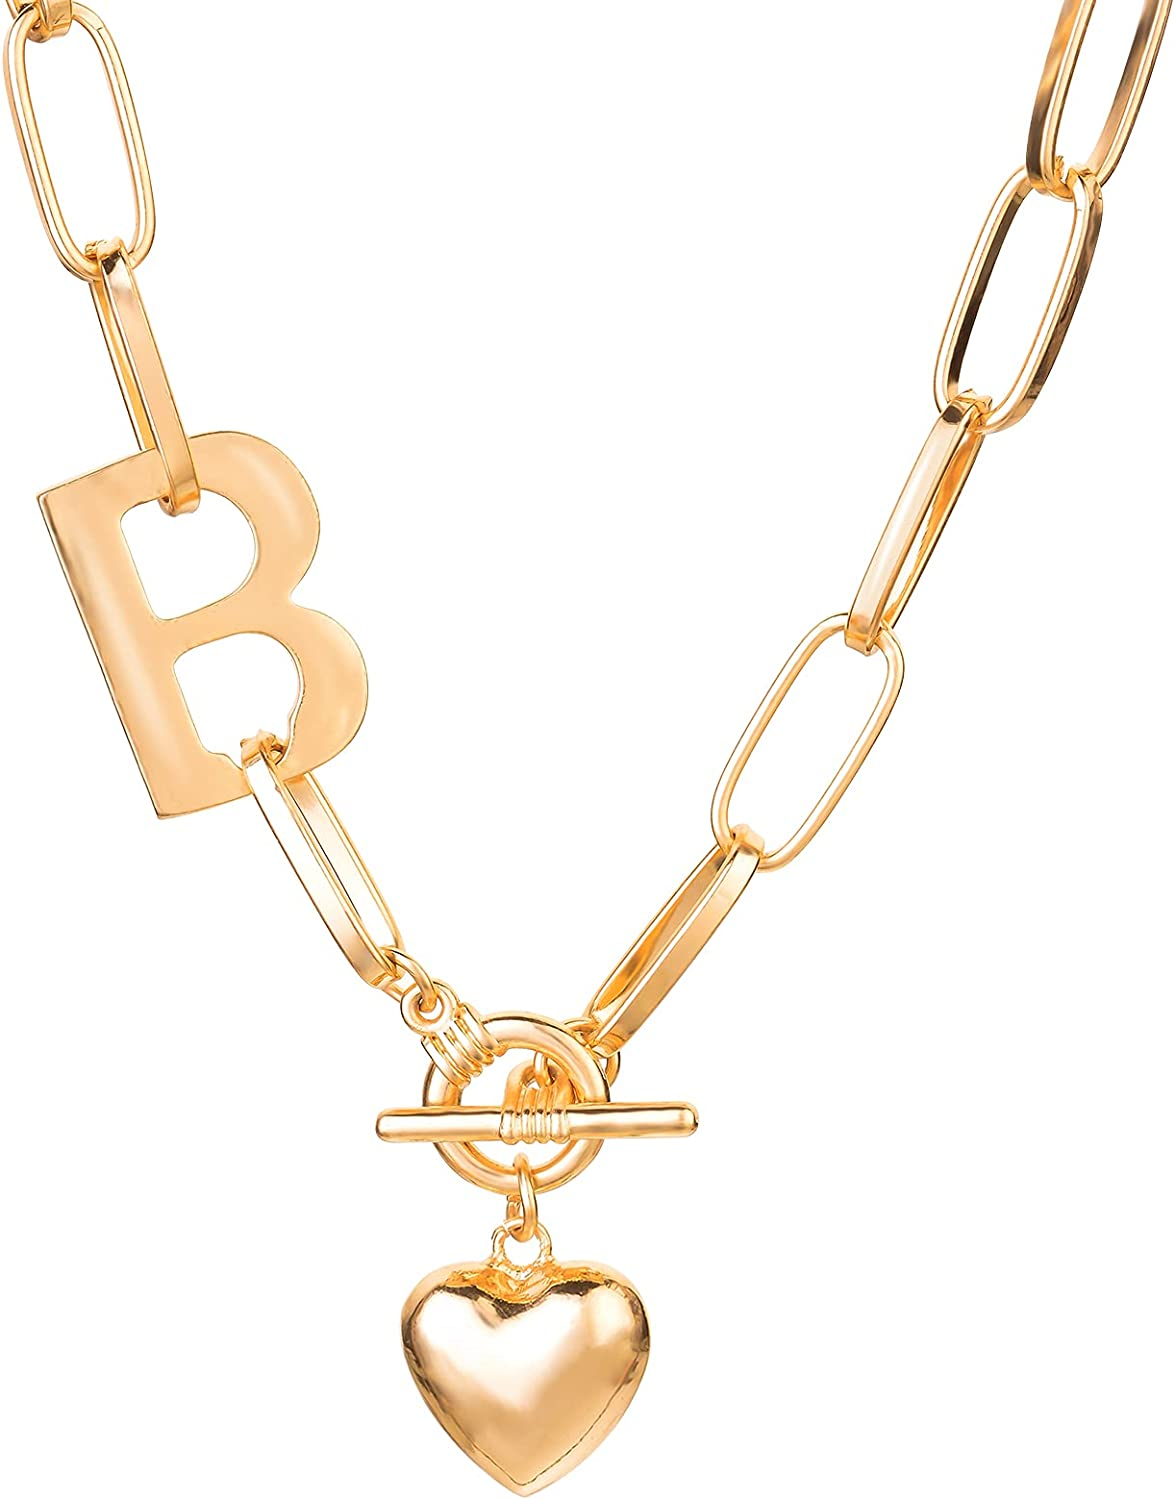 Papasgix Heart Necklaces for Women, 18k Gold Plated Paperclip Chain Necklace with Initial B, Heart Pendant Necklaces with Toggle Clasp, Gifts Jewelry for Women, Girls, Teen